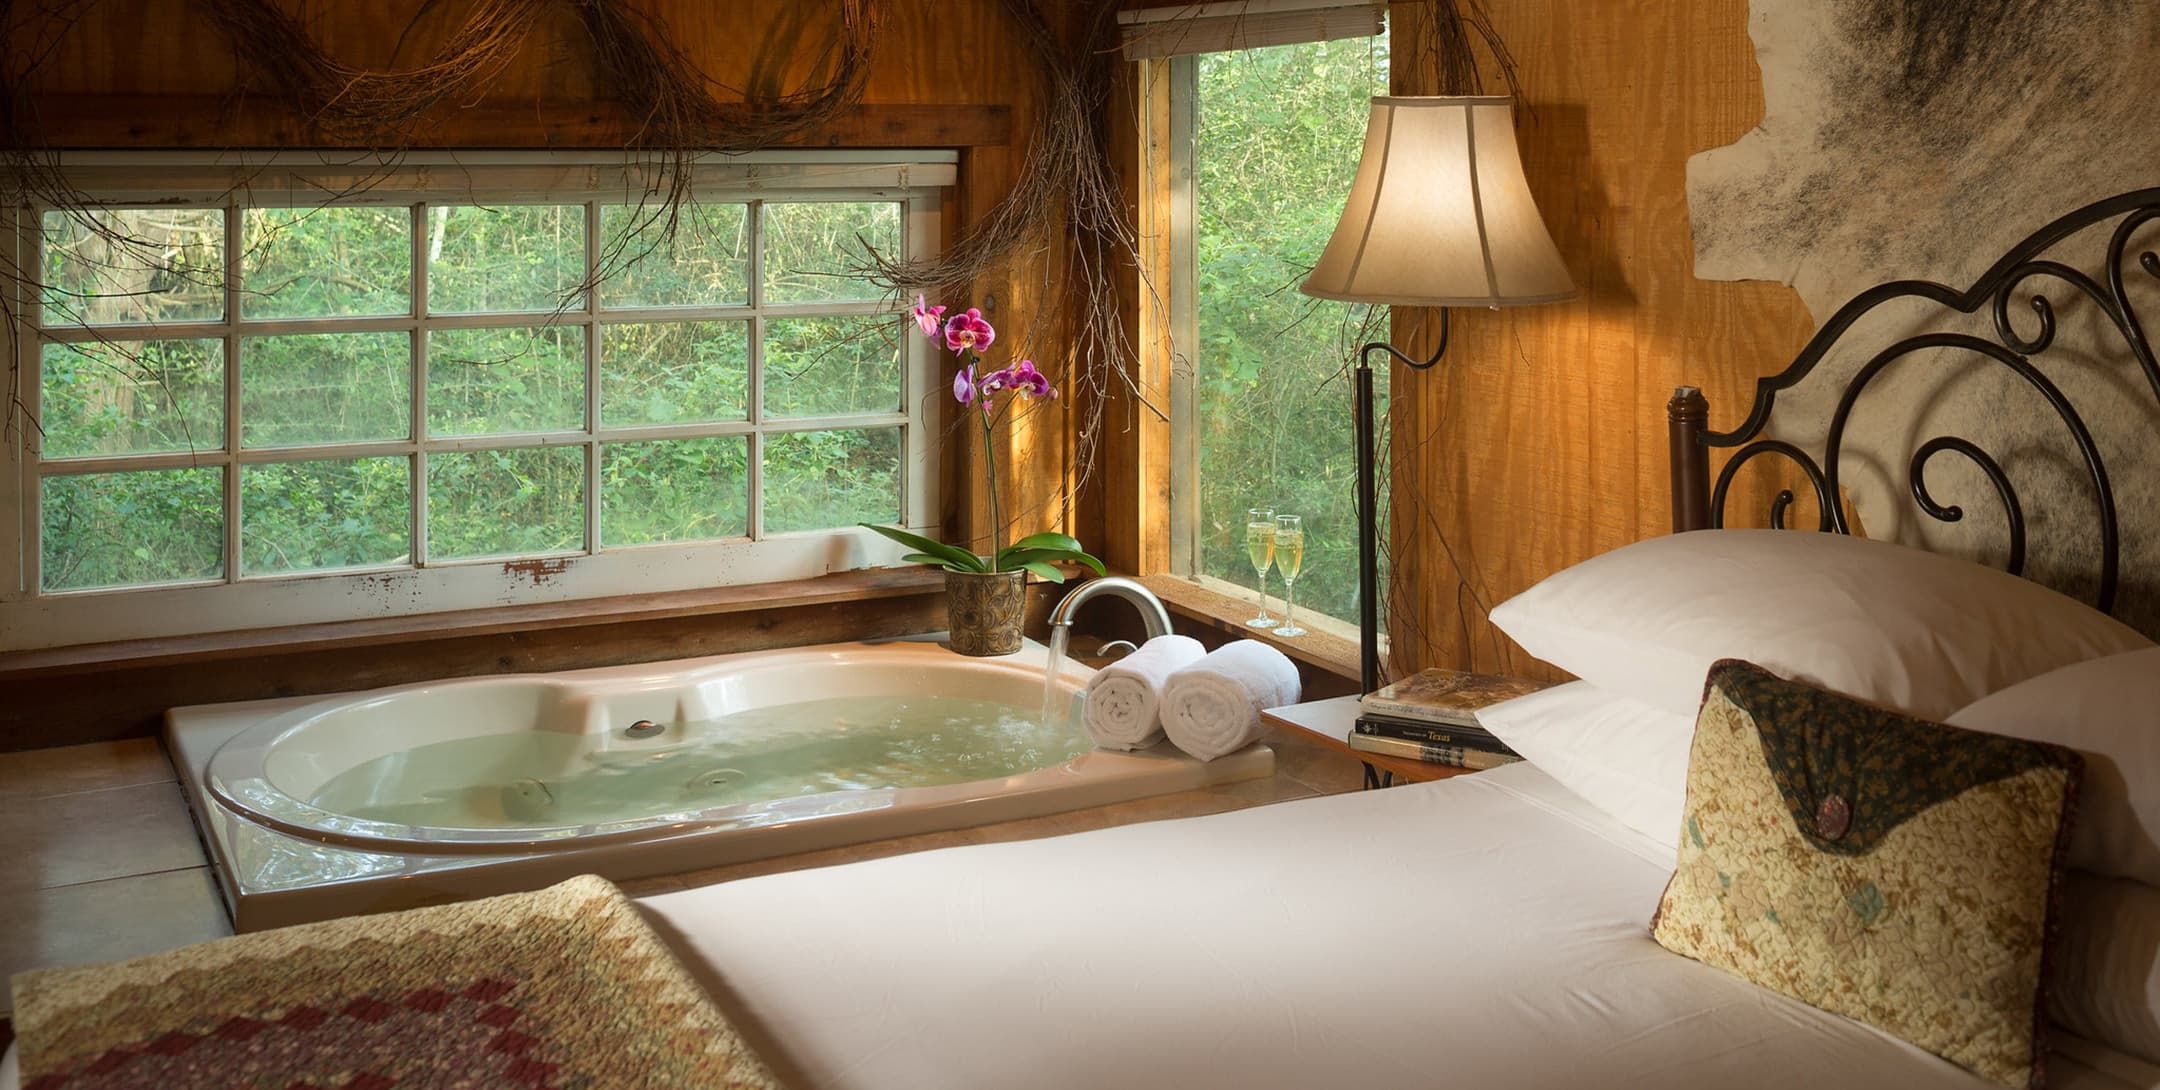 Bed and soaking tub in the Enchanted Cabin